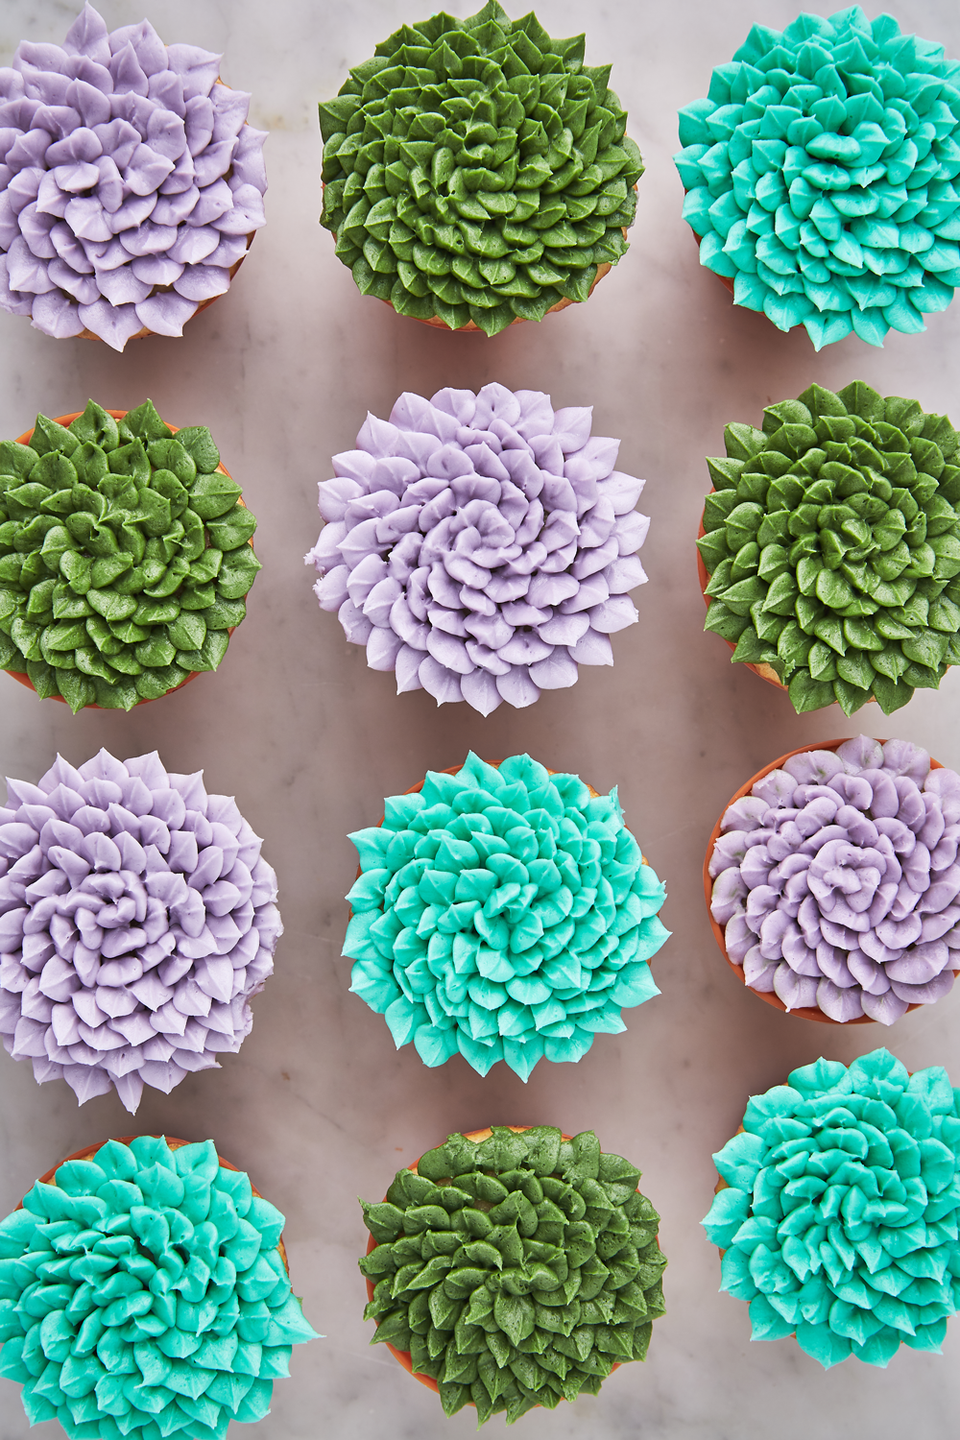 """<p>Plant moms will freak over these gorgeous cupcakes.</p><p>Get the recipe from <a href=""""https://www.delish.com/cooking/recipe-ideas/a19802923/succulent-cupcakes-recipe/"""" rel=""""nofollow noopener"""" target=""""_blank"""" data-ylk=""""slk:Delish"""" class=""""link rapid-noclick-resp"""">Delish</a>.</p>"""